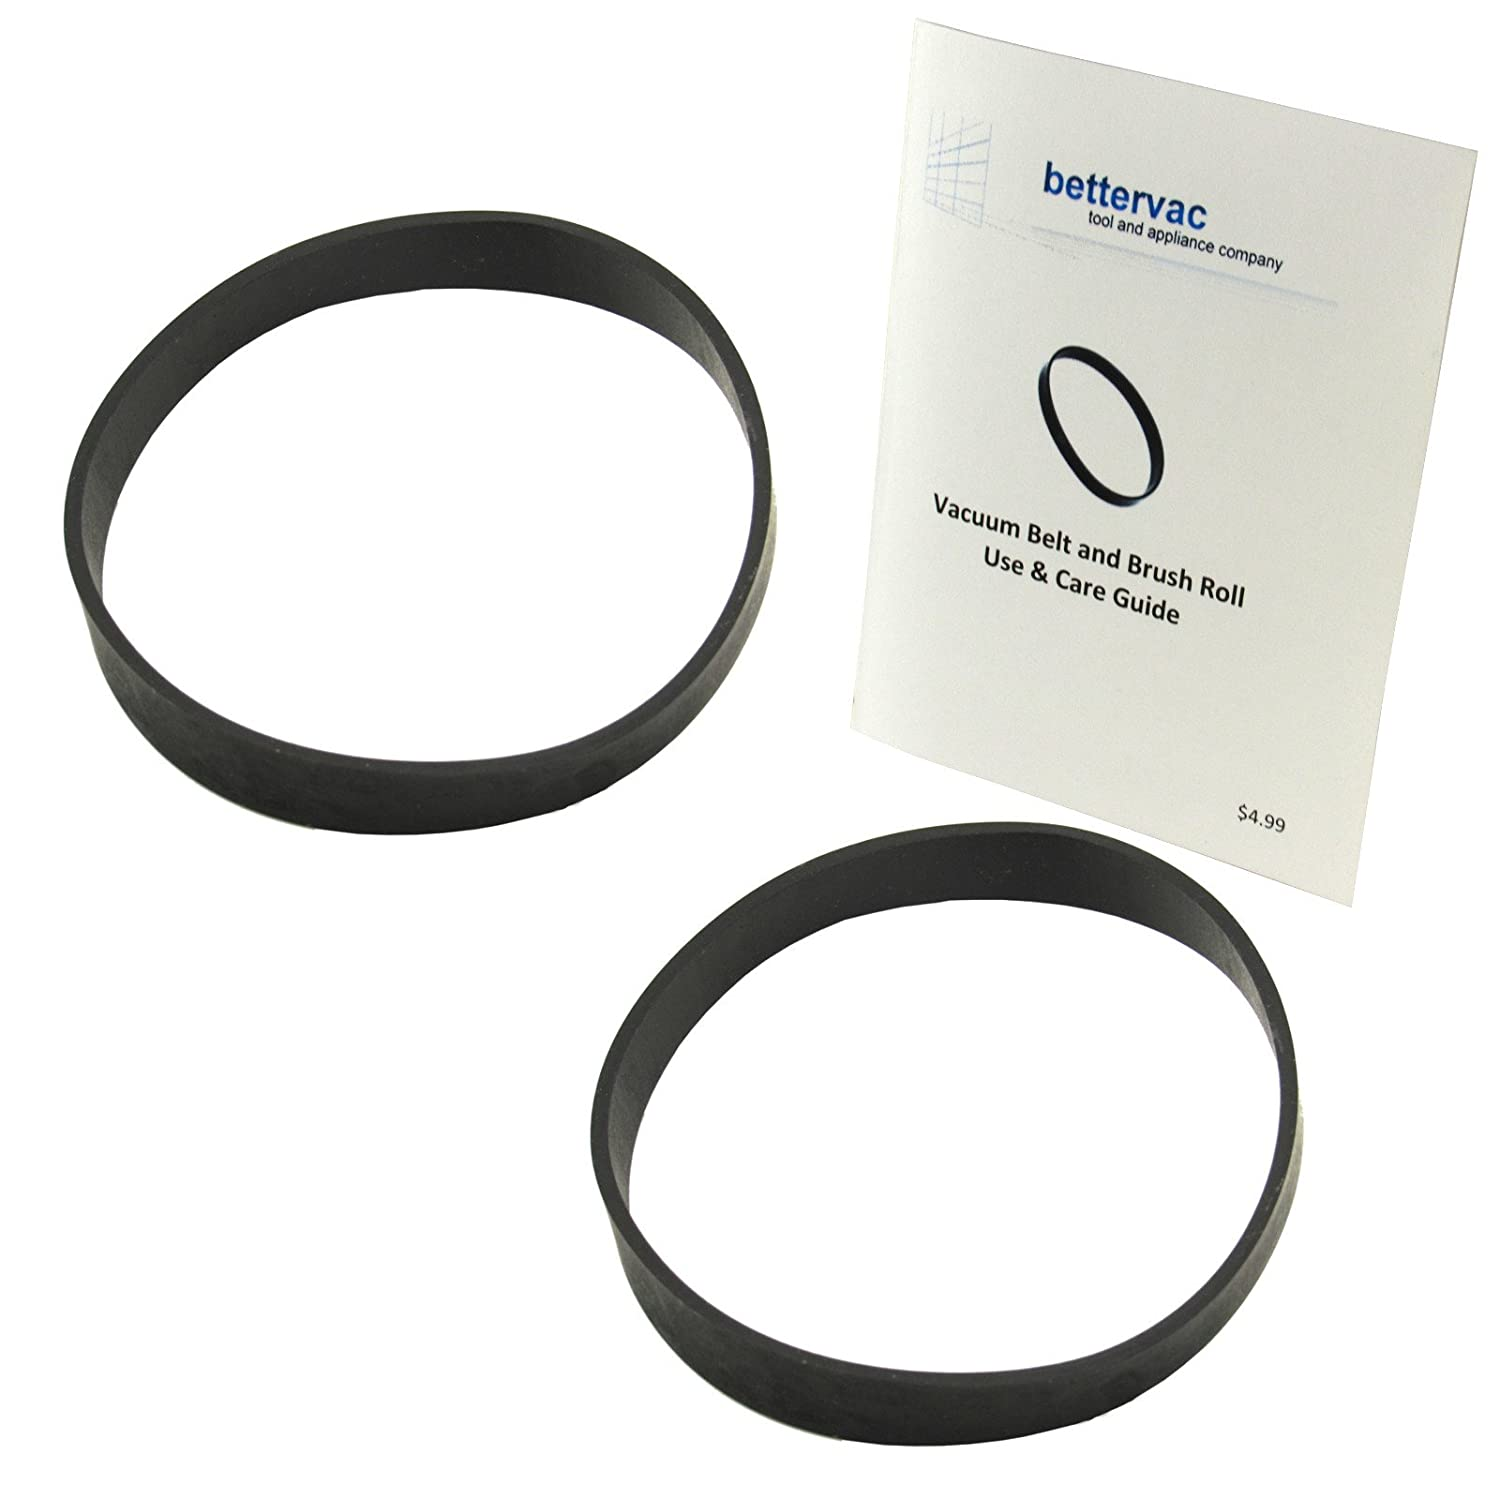 Bissell PowerForce & PowerForce Helix Vacuum Belt 2 Pack #2031093 Bundled With Use & Care Guide